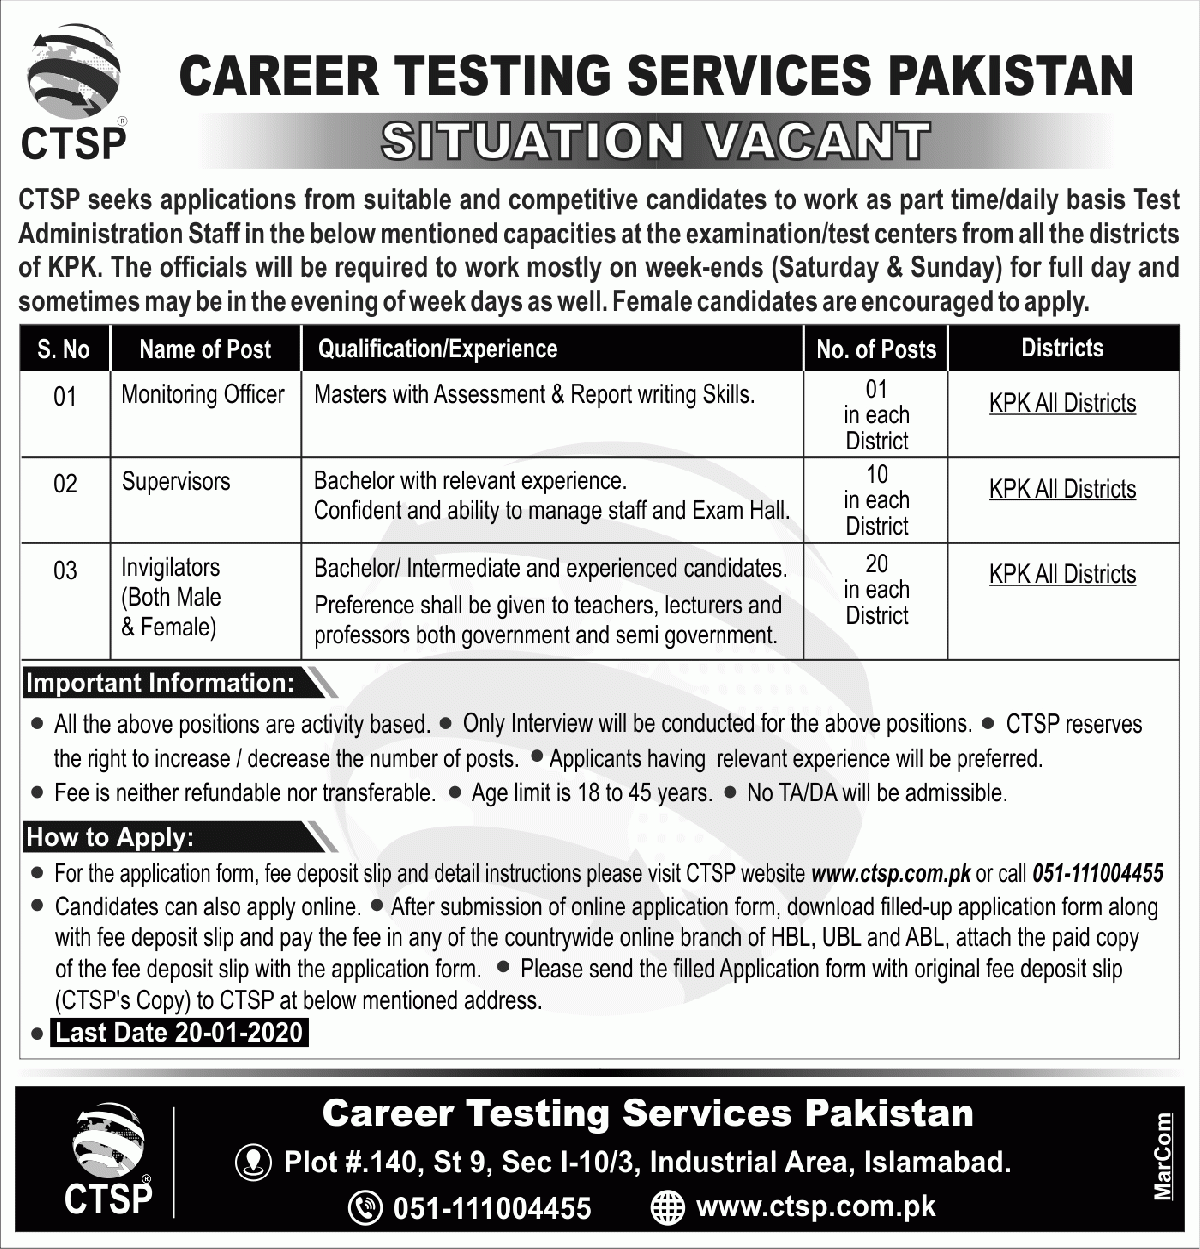 Career Testing Services Pakistan (CTSP) Jobs 2020 for Invigilators, Supervisors & Monitoring Officers Latest